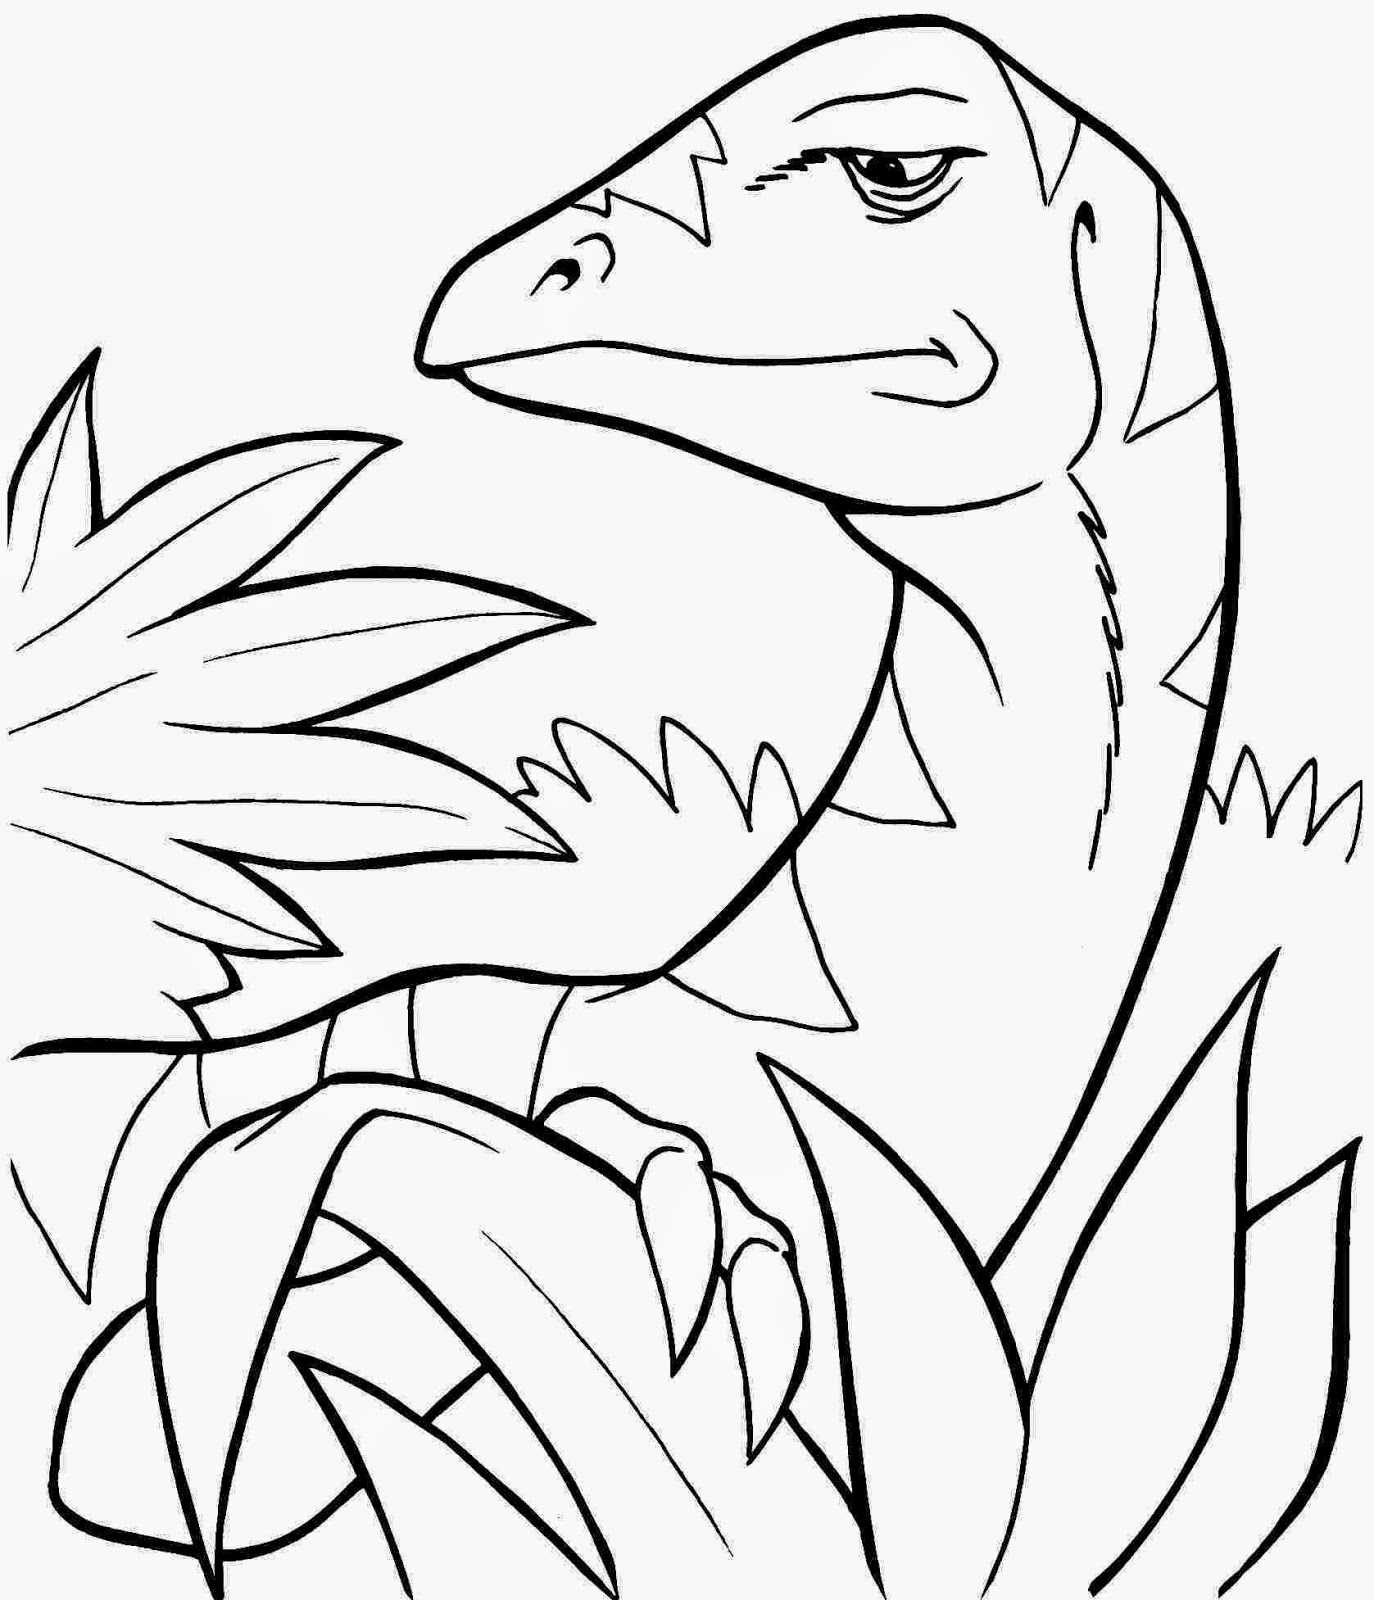 dinosaur pictures to print for free simple dinosaur coloring page getcoloringpagescom for to pictures free dinosaur print